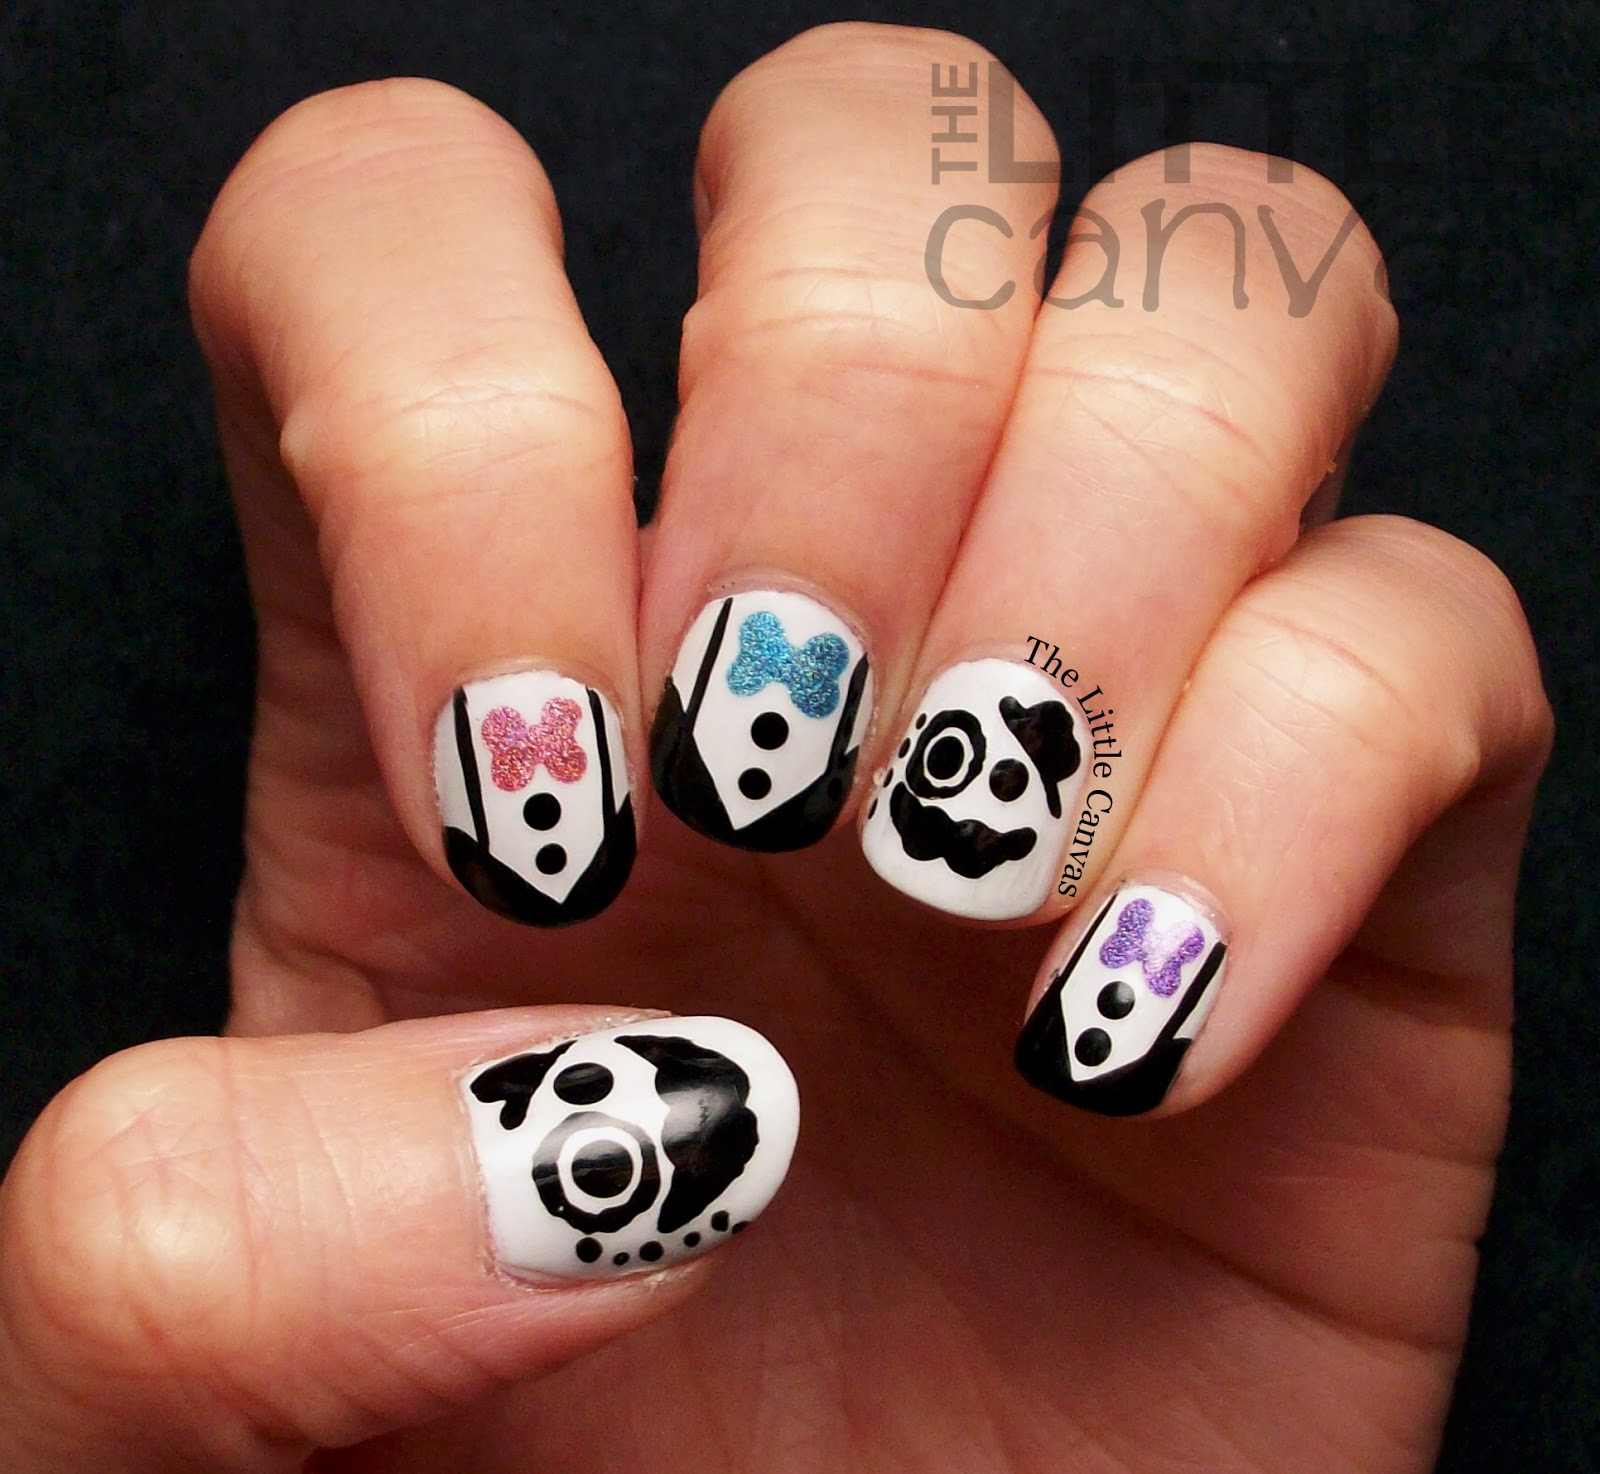 Fancy schmancy movember tuxedo men tutorial the little canvas now that i have become a better nail artist i decided this would be a good manicure to reattempt on my own nails for movember lets take a look prinsesfo Image collections